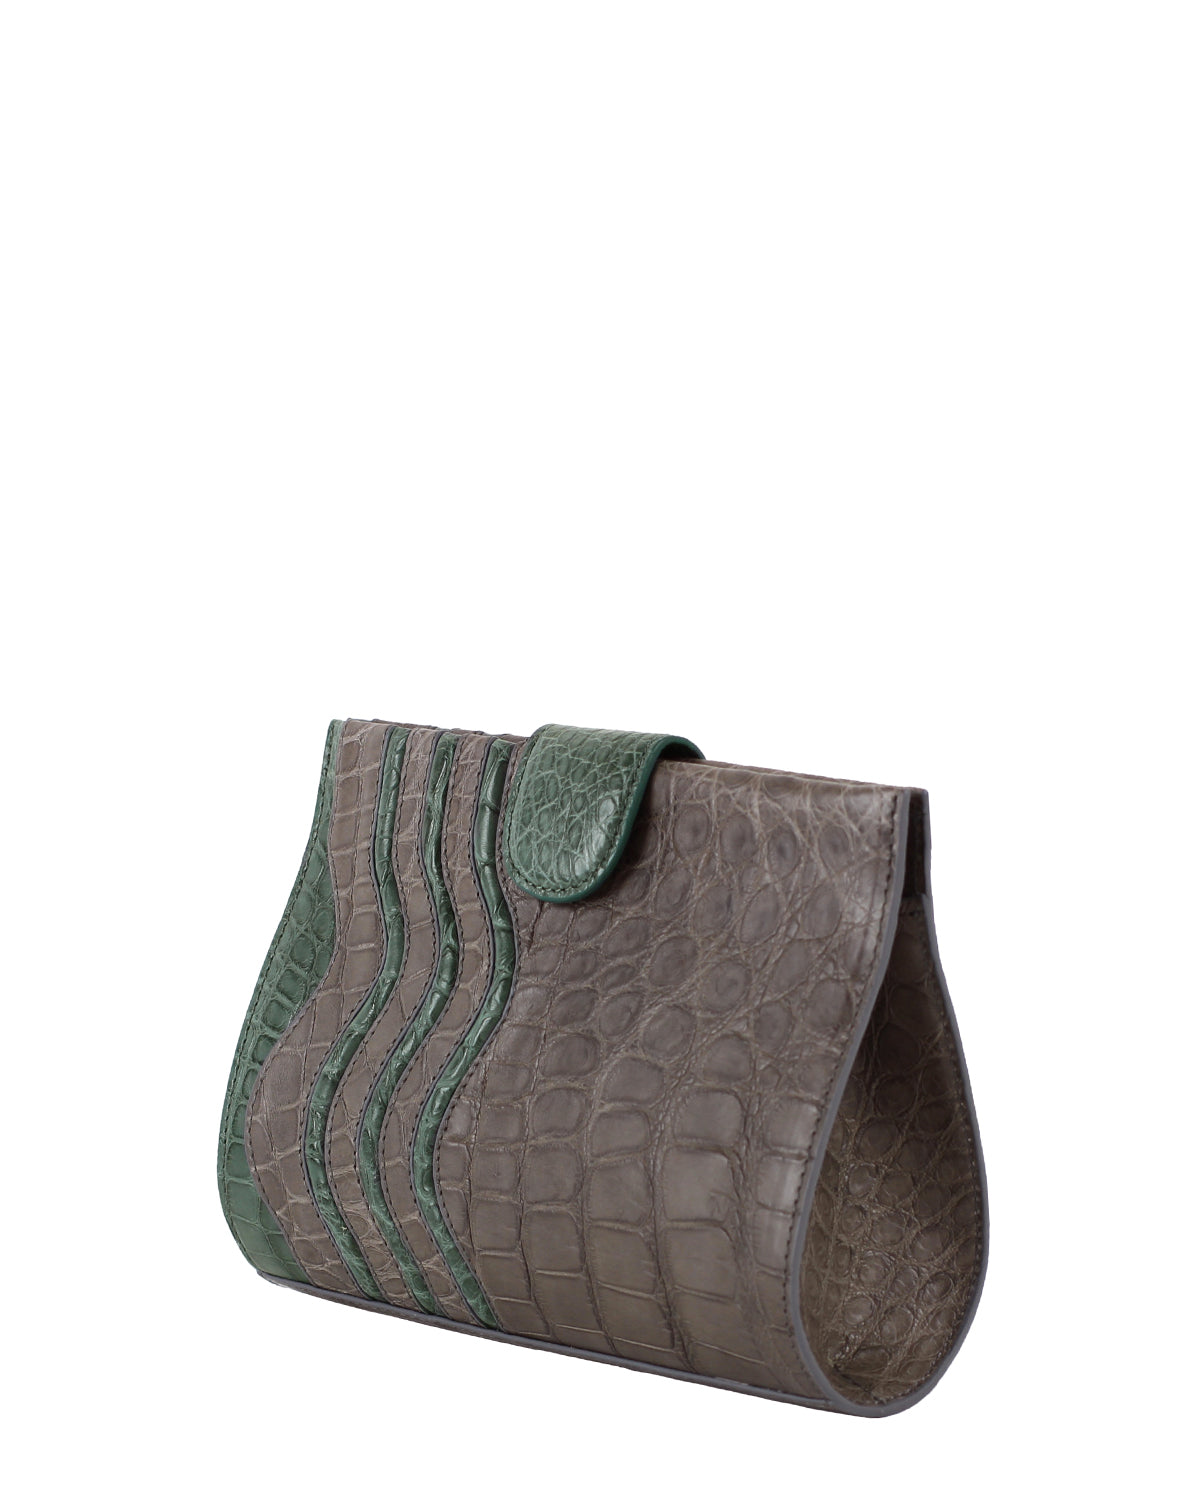 YB Joey Clutch Matte Green Dark Brown Alligator Yara Bashoor Angle View